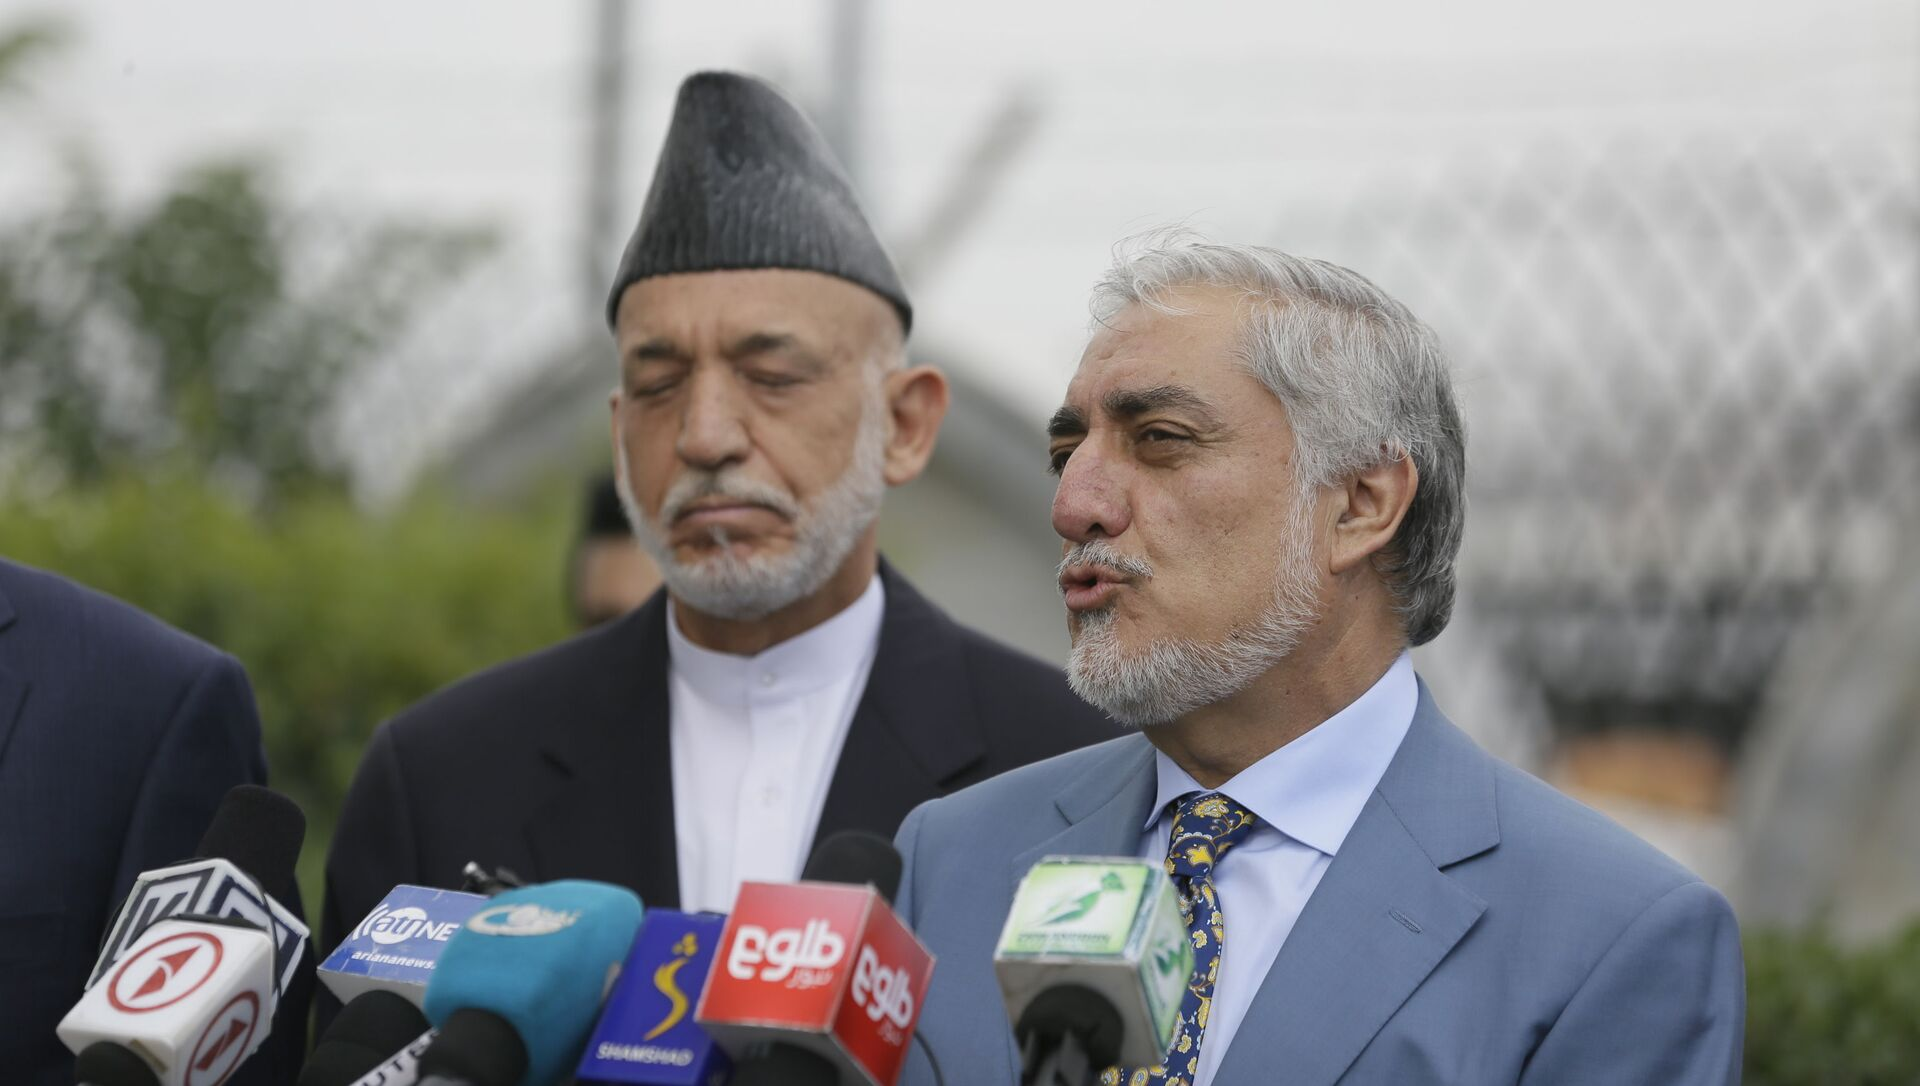 Abdullah Abdullah, head of Afghanistan's National Reconciliation Council talks about peace negotiation at the news conference at Hamid Karzai International Airport, in Kabul, Afghanistan, Friday, July. 16, 2021. - Sputnik International, 1920, 18.08.2021